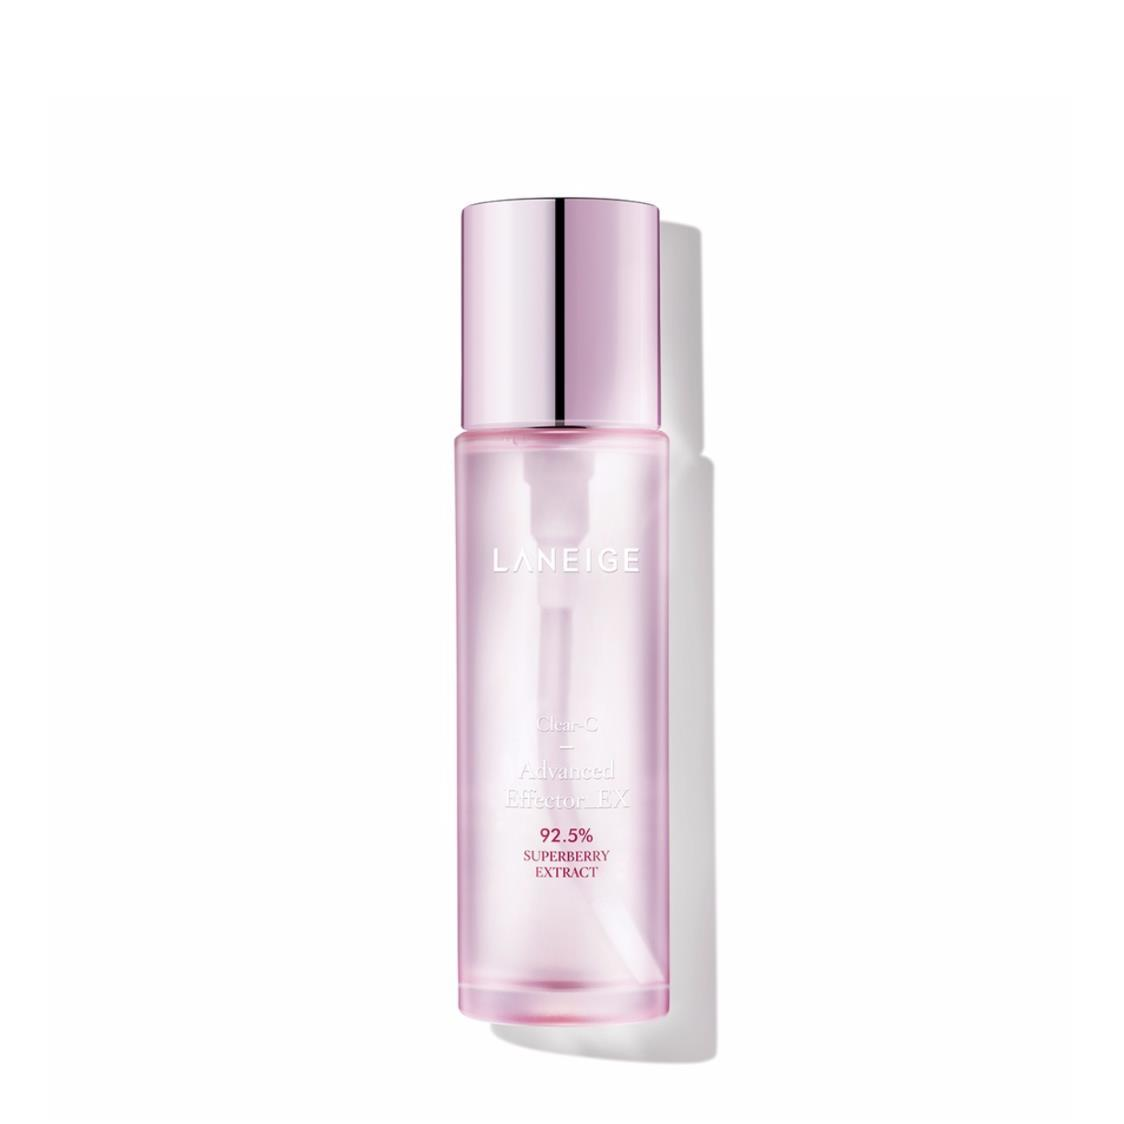 Clear-C Advanced Effector 150ml